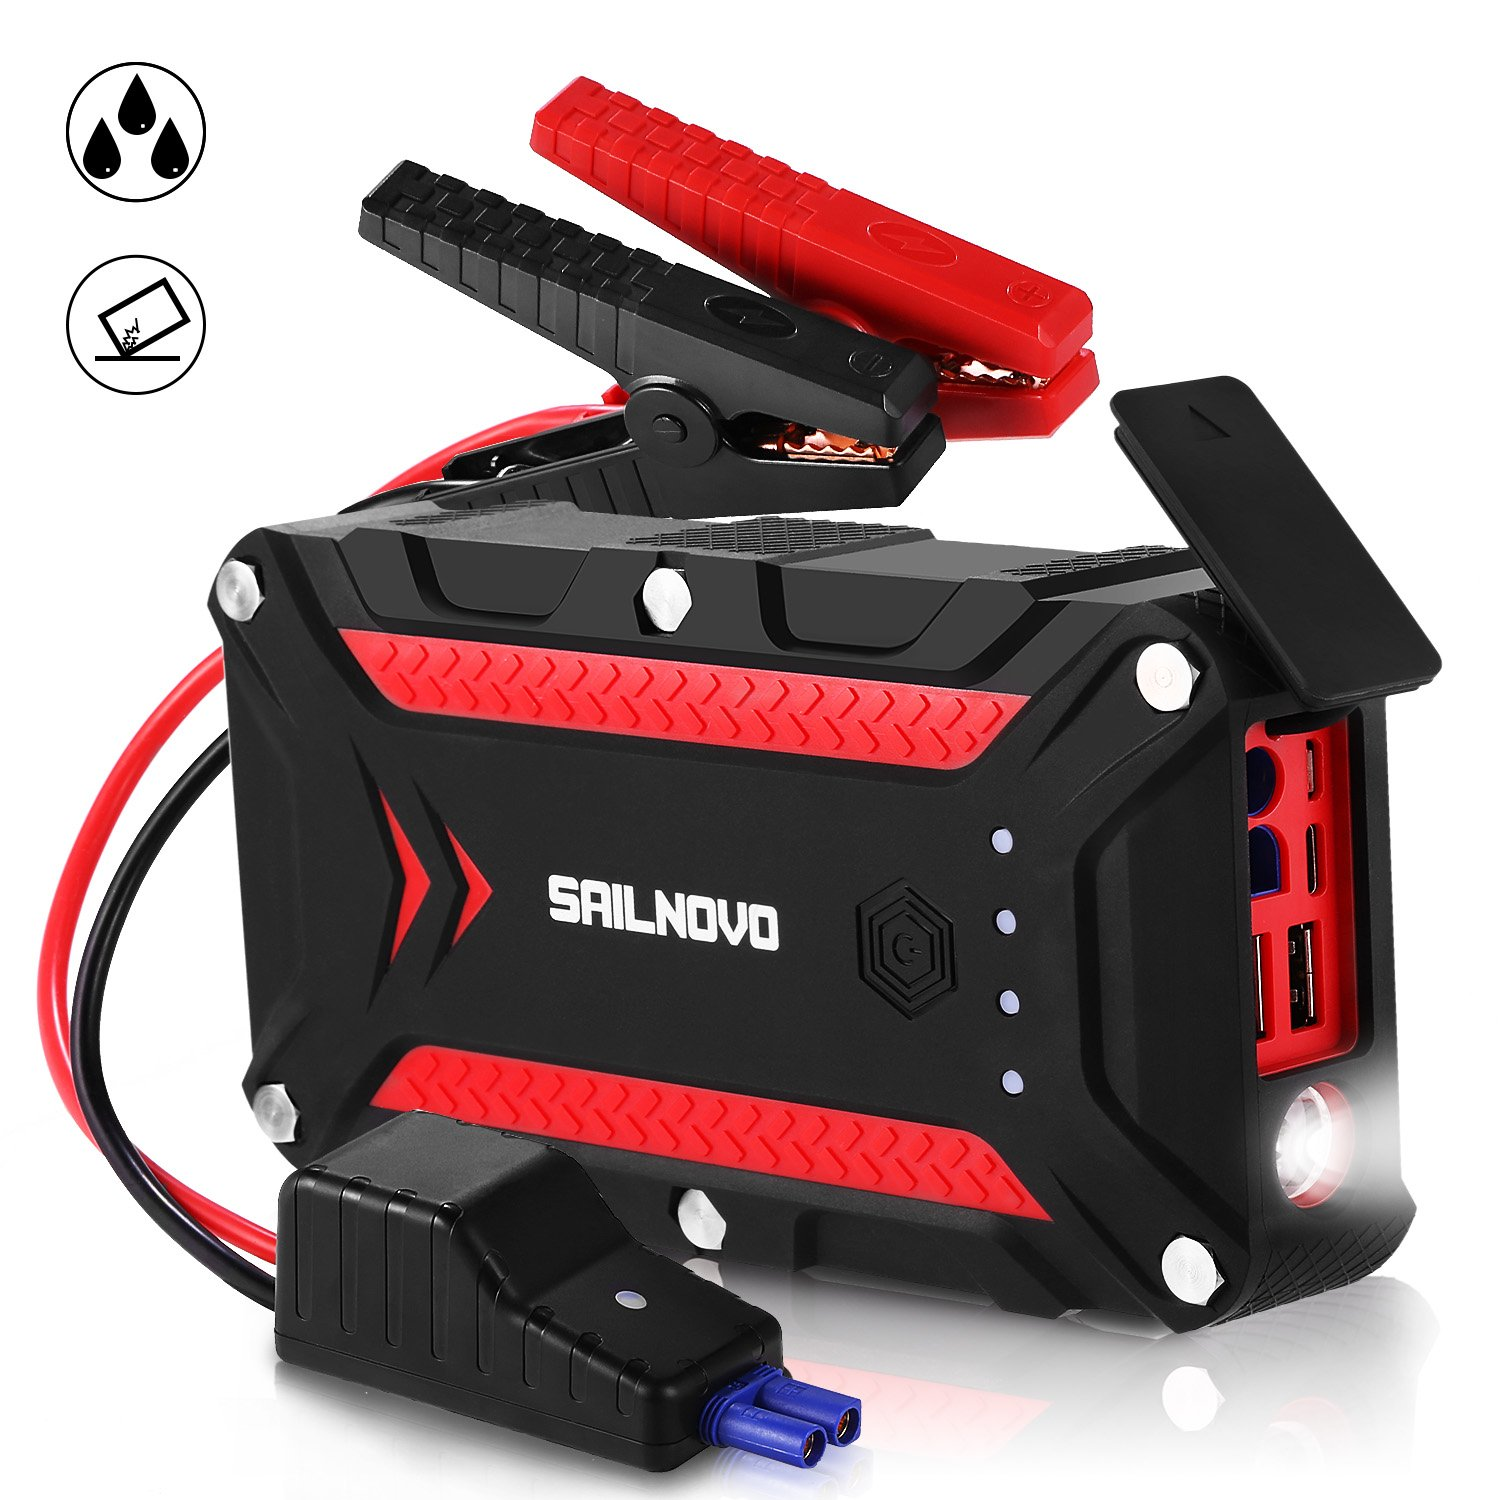 Sailnovo 1200A Waterproof Car Jump Starter(7.5L Gas & 6L Diesel Engine) With Dual USB QC3.0&PD Type-C, 12V Portable Auto Battery Booster Power Pack Phone Charger with Jumper Cables and LED Flahslight